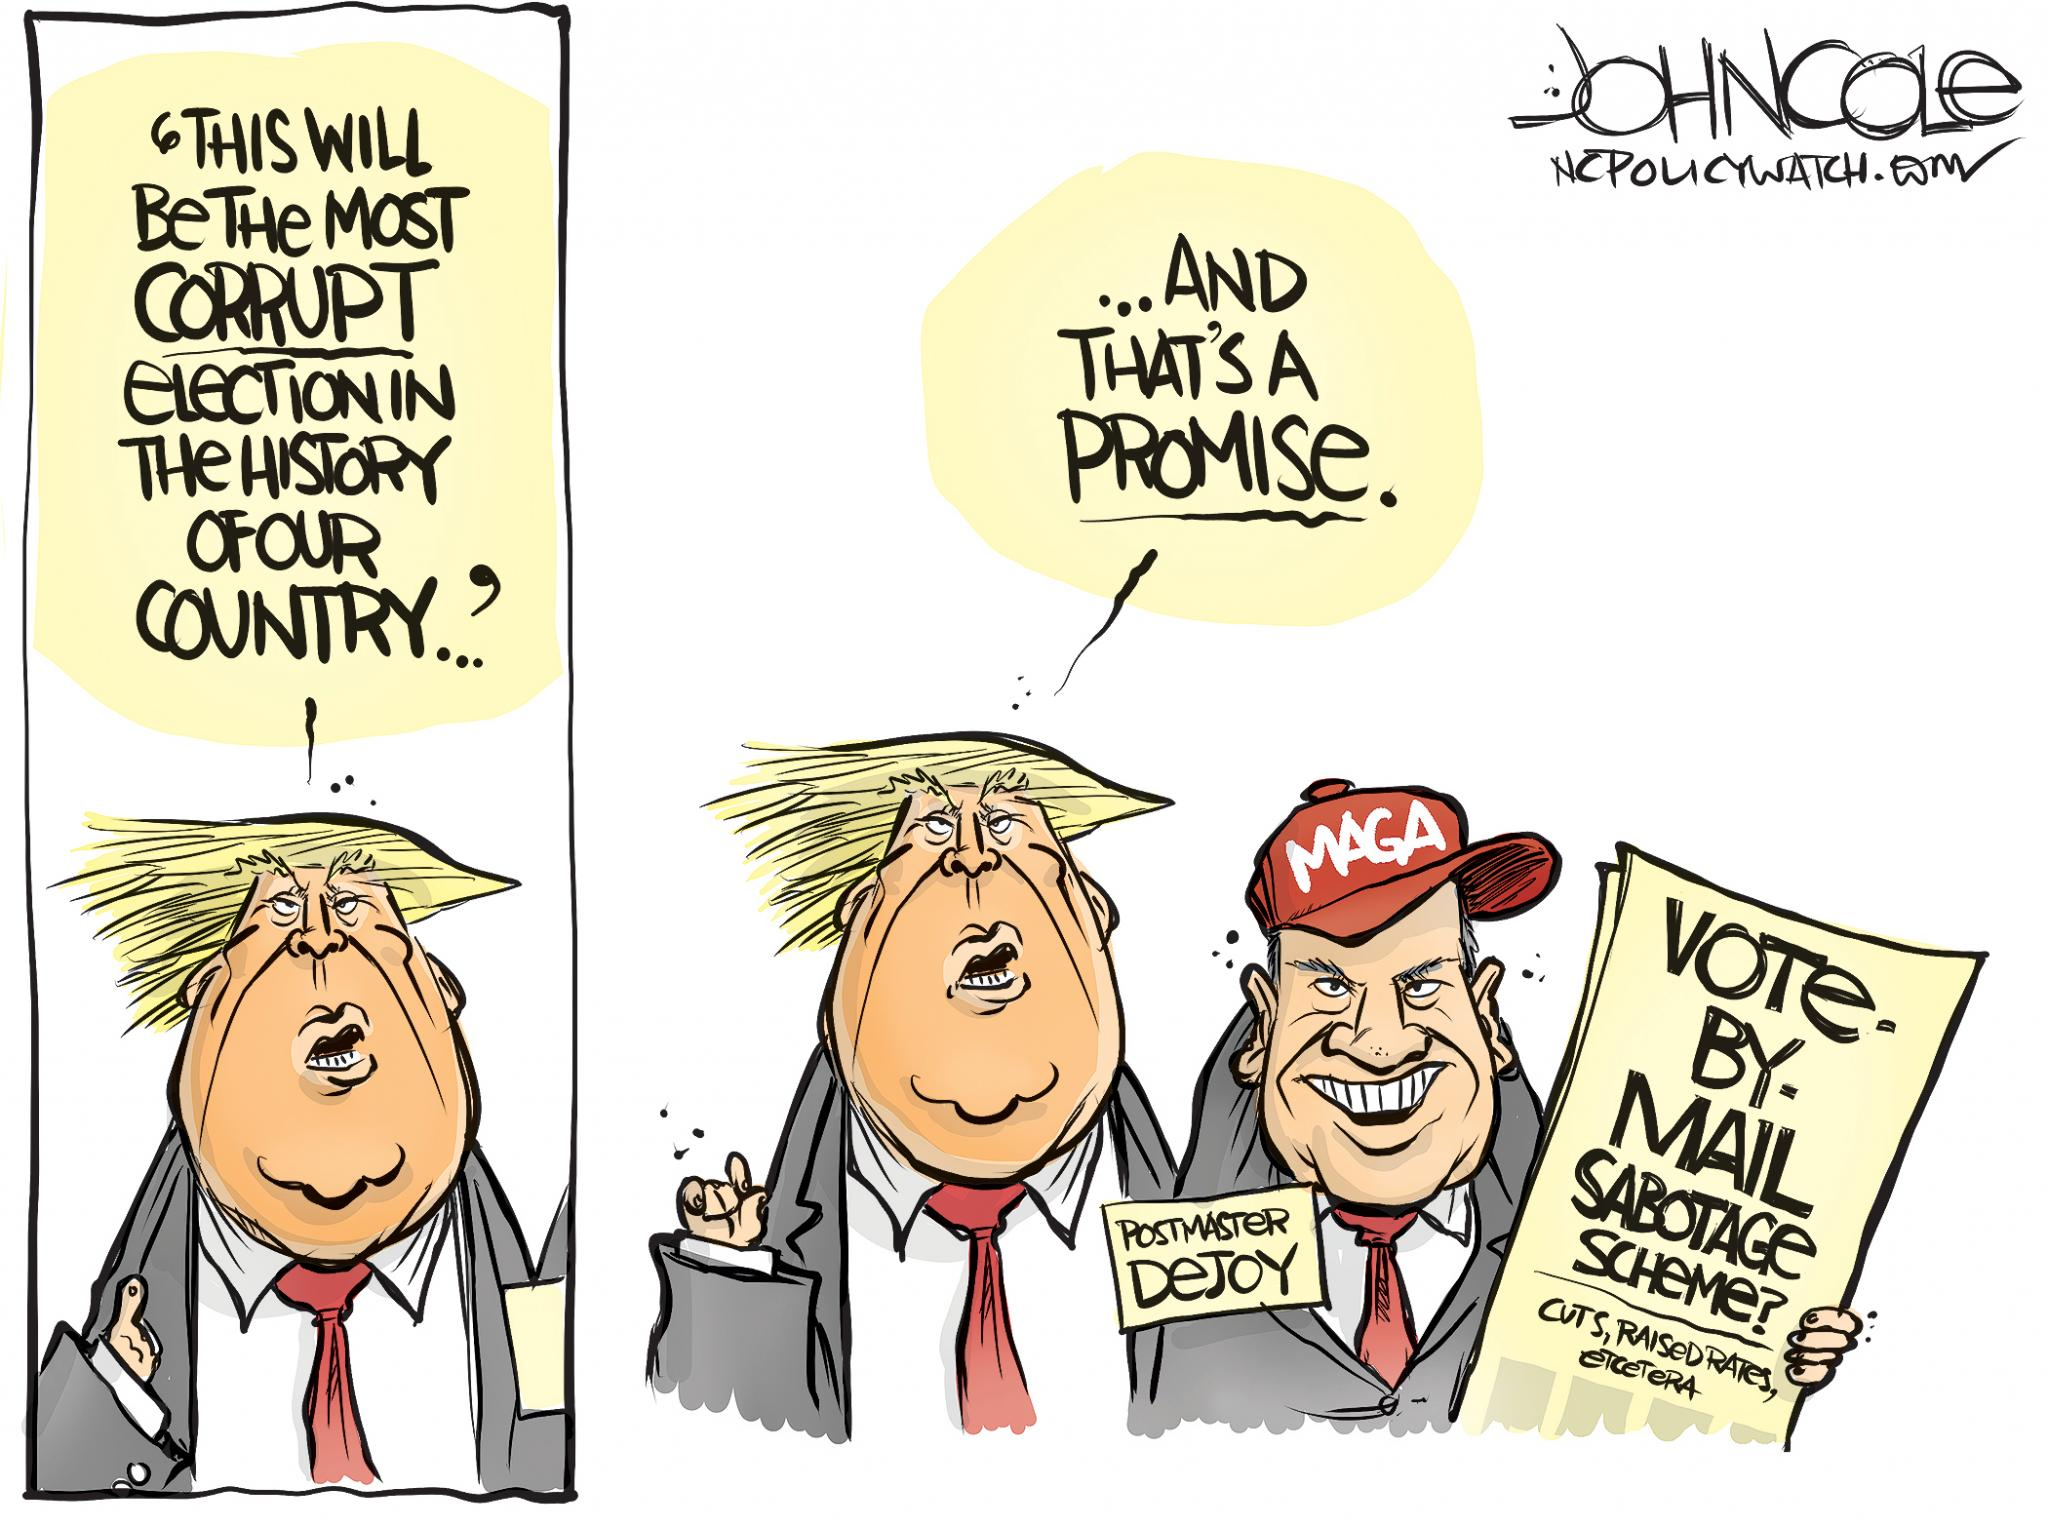 Political cartoons - the 'funny' pics thread.-242210_rgb-jpg